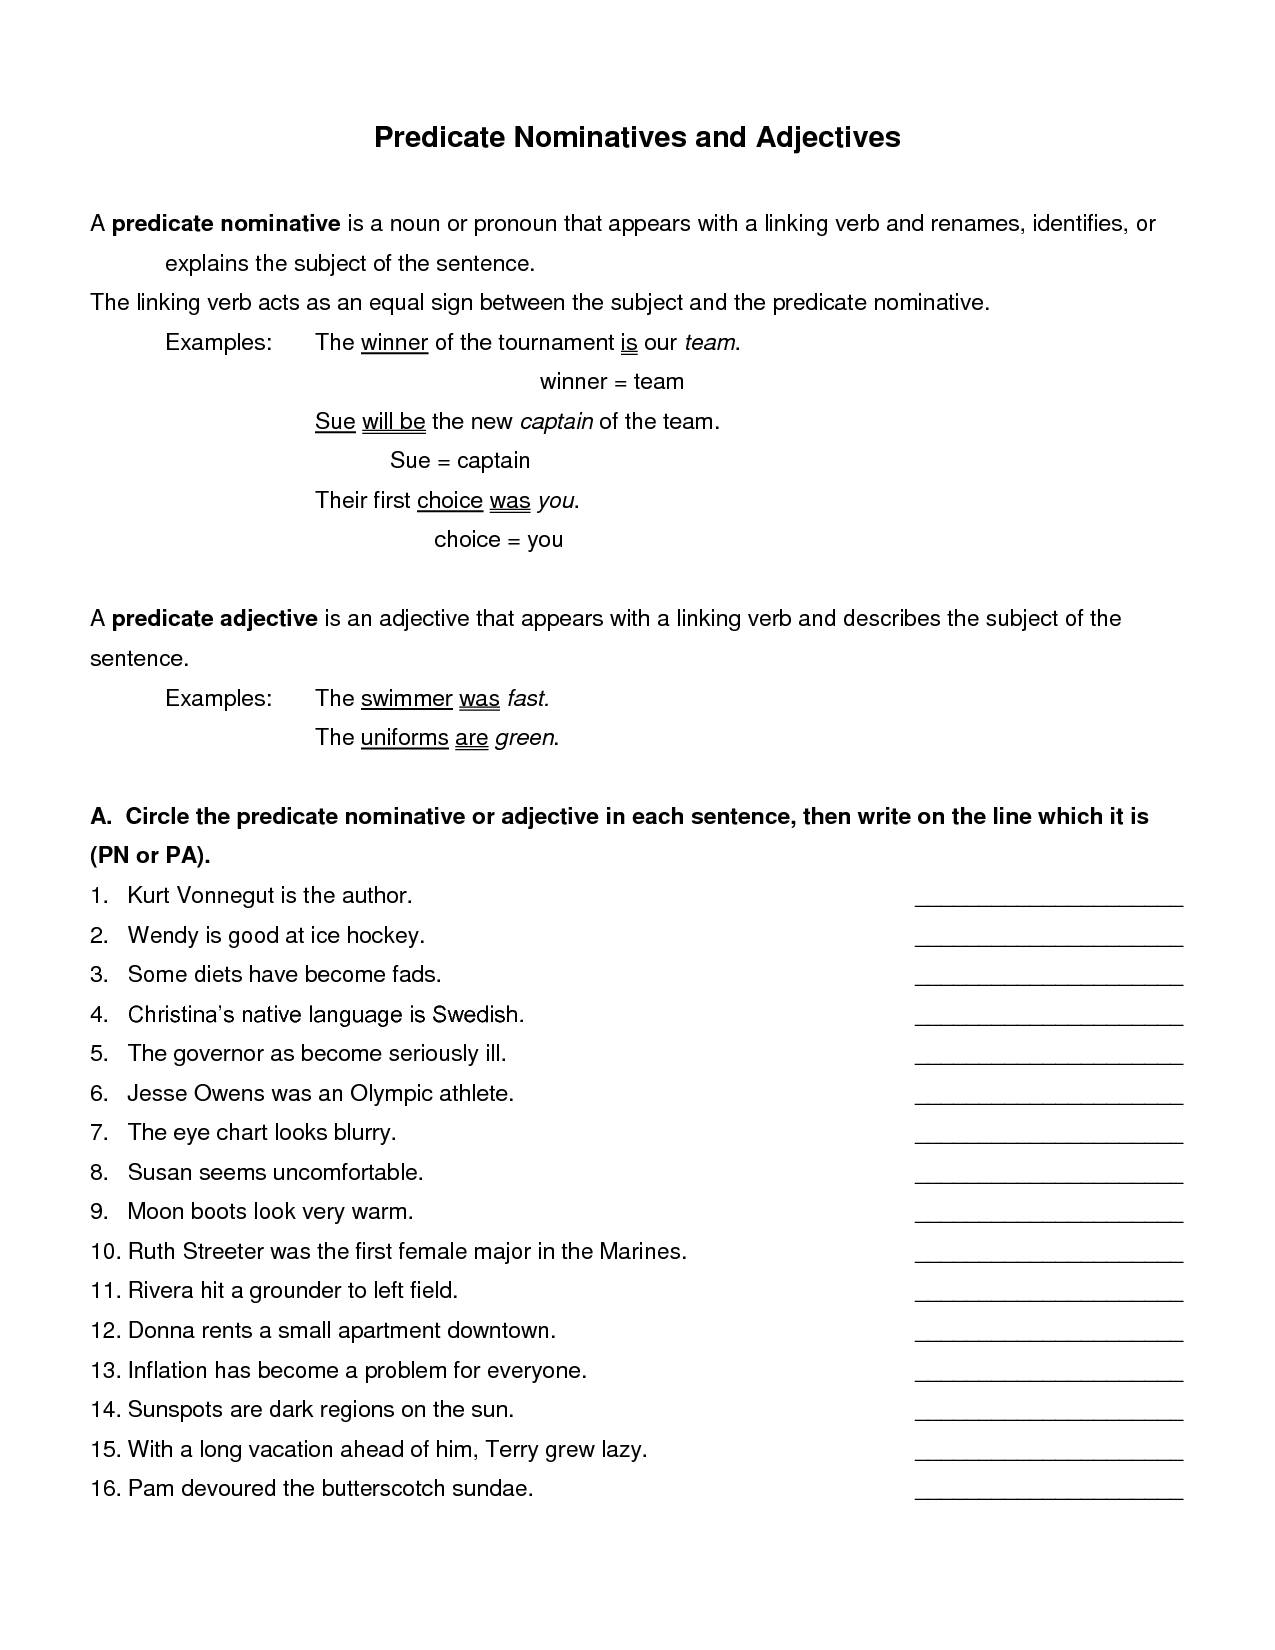 Subject Noun And Predicate Noun Worksheet With Answers